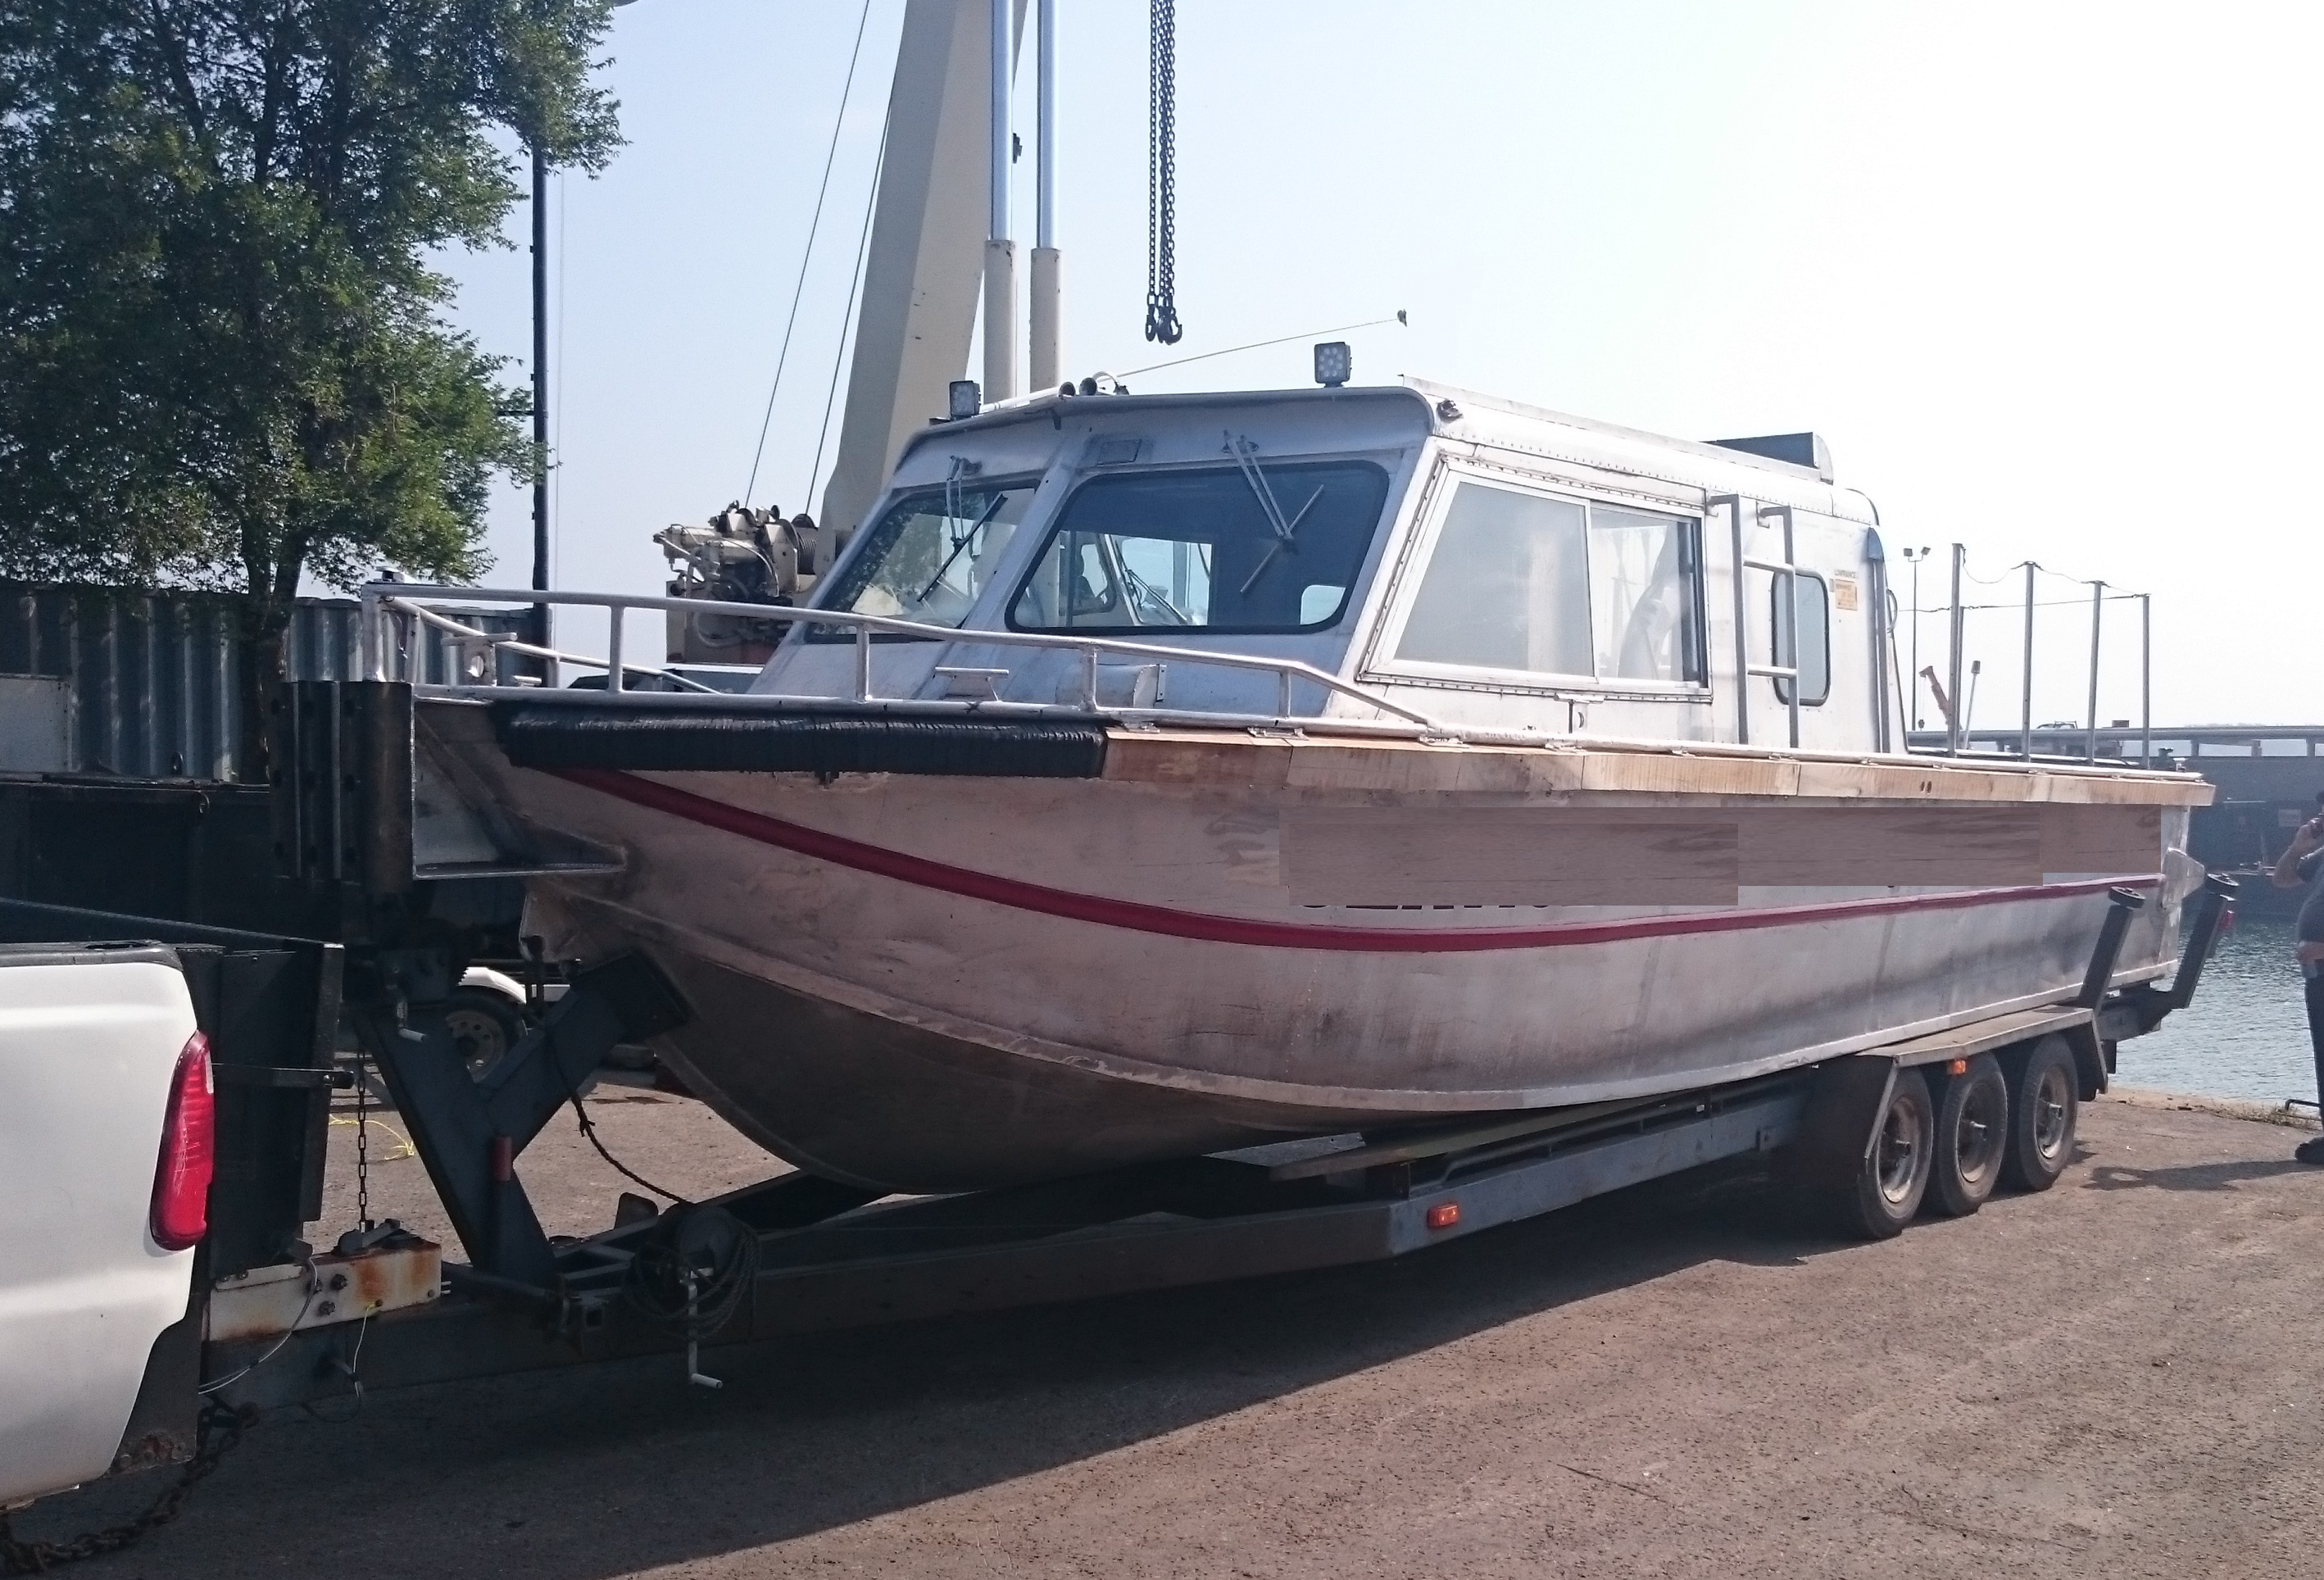 W2346 scruton marine for Fishing equipment for sale on craigslist